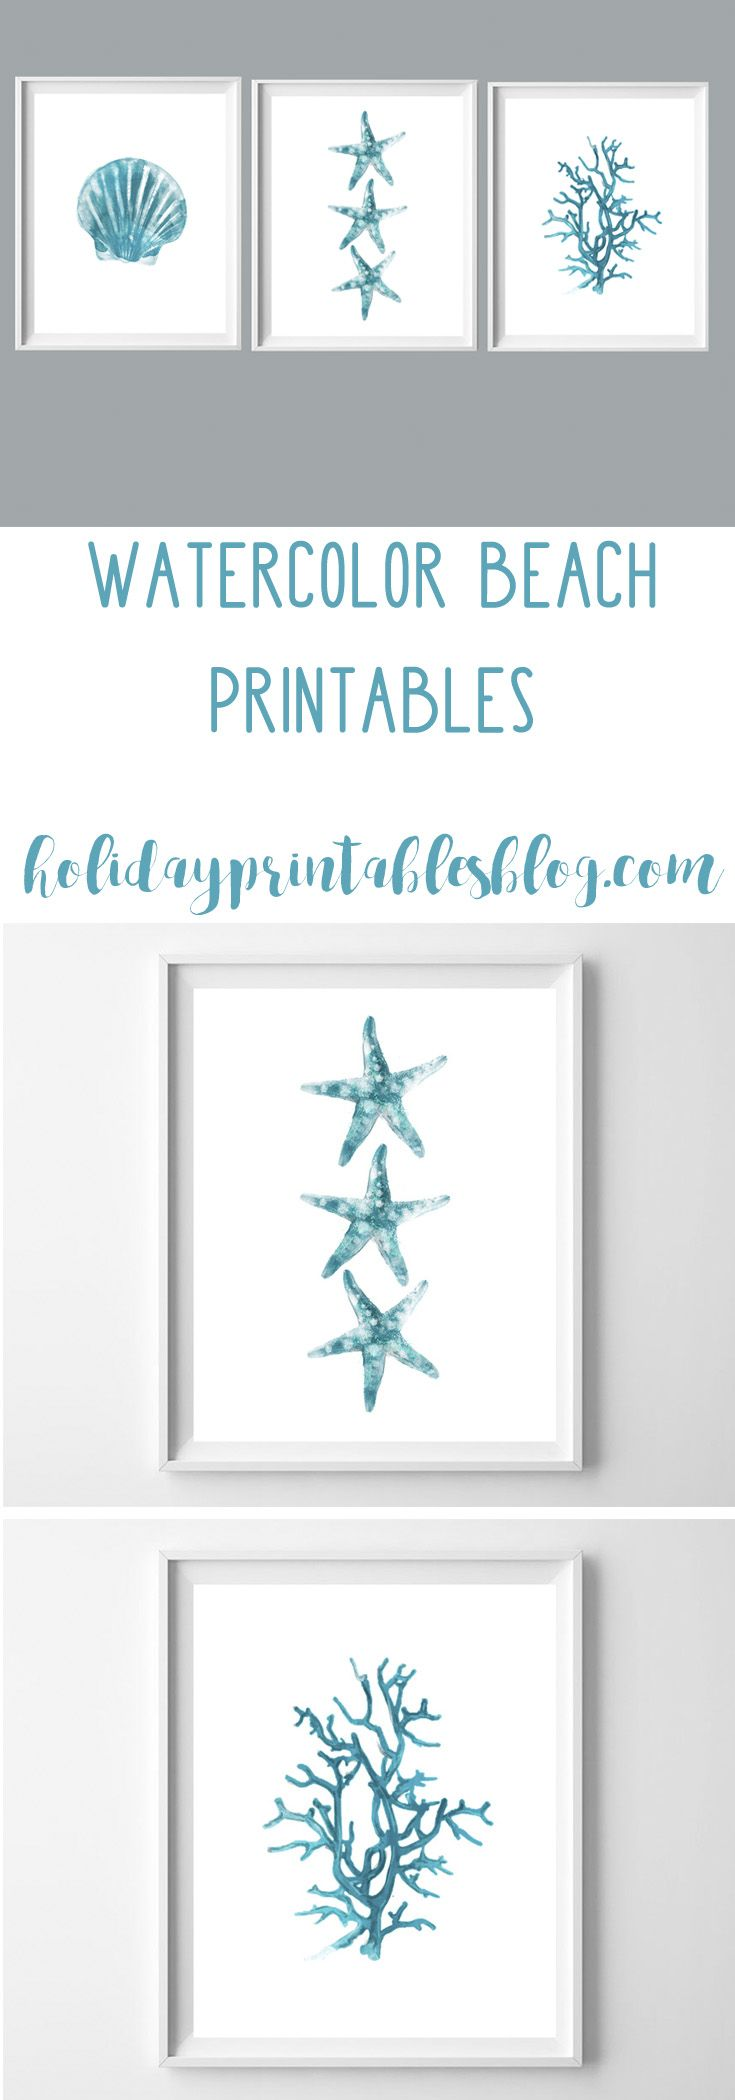 Bathroom wall art printables - Watercolor Beach Printables Free Printable Art Beach House Coastal Decor Teal Art